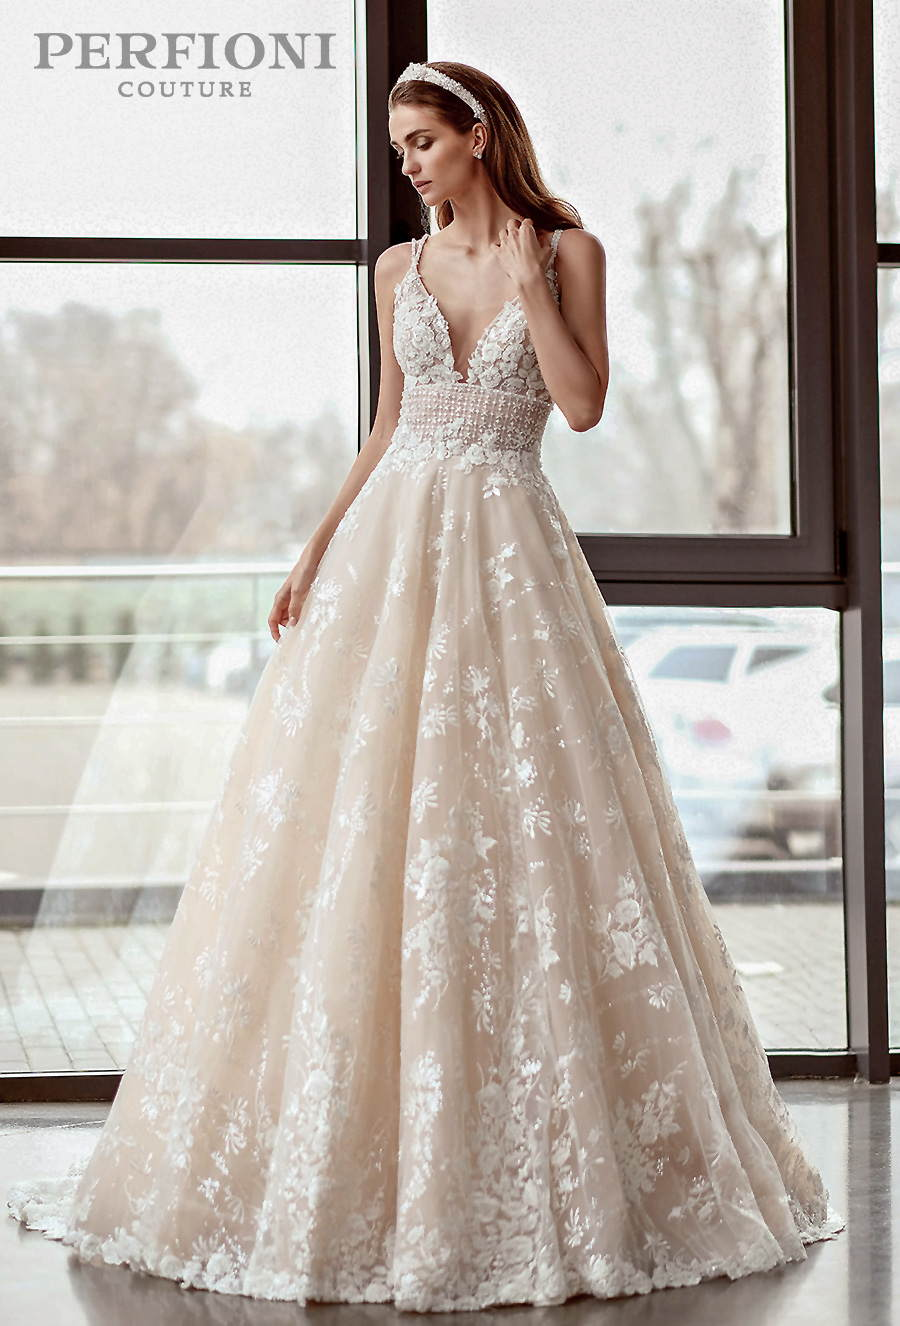 perfioni 2020 love season bridal sleeveless double strap v neck full embellishment romantic ivory a line wedding dress v back medium train (abigail) mv